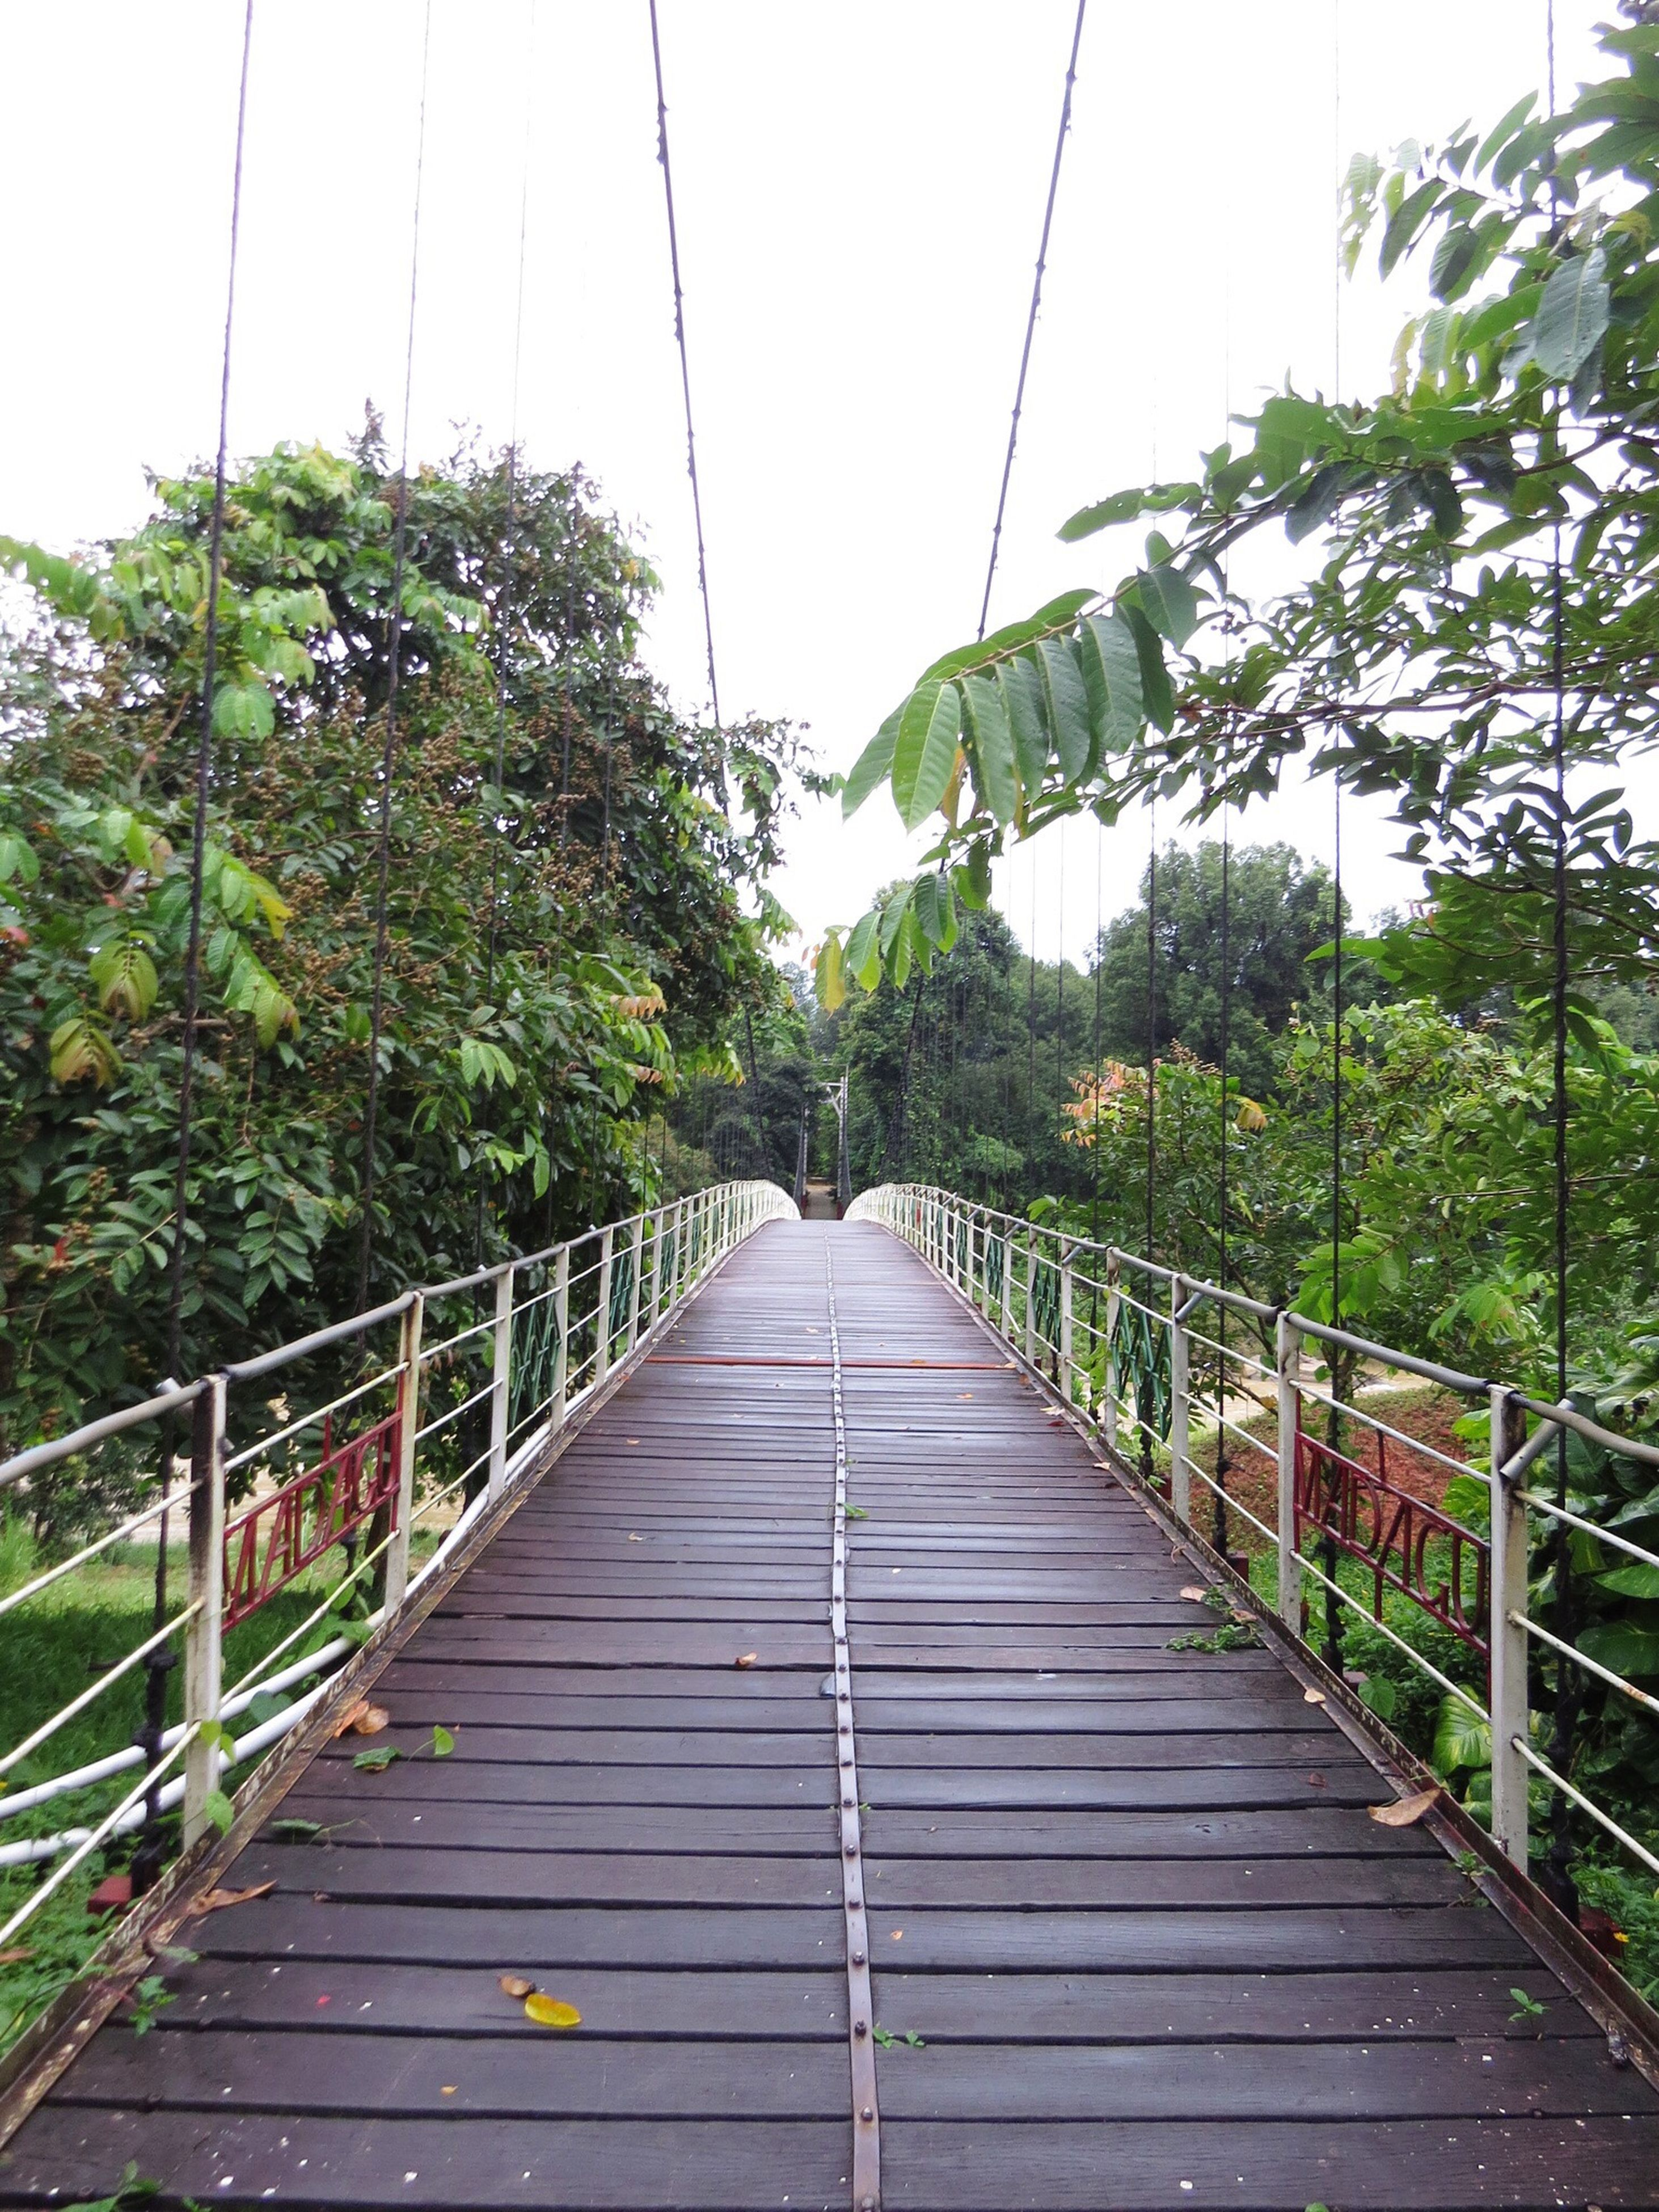 tree, railing, the way forward, clear sky, growth, connection, green, tranquil scene, long, plant, footbridge, day, scenics, tranquility, diminishing perspective, nature, narrow, outdoors, solitude, bridge, sky, green color, non-urban scene, no people, beauty in nature